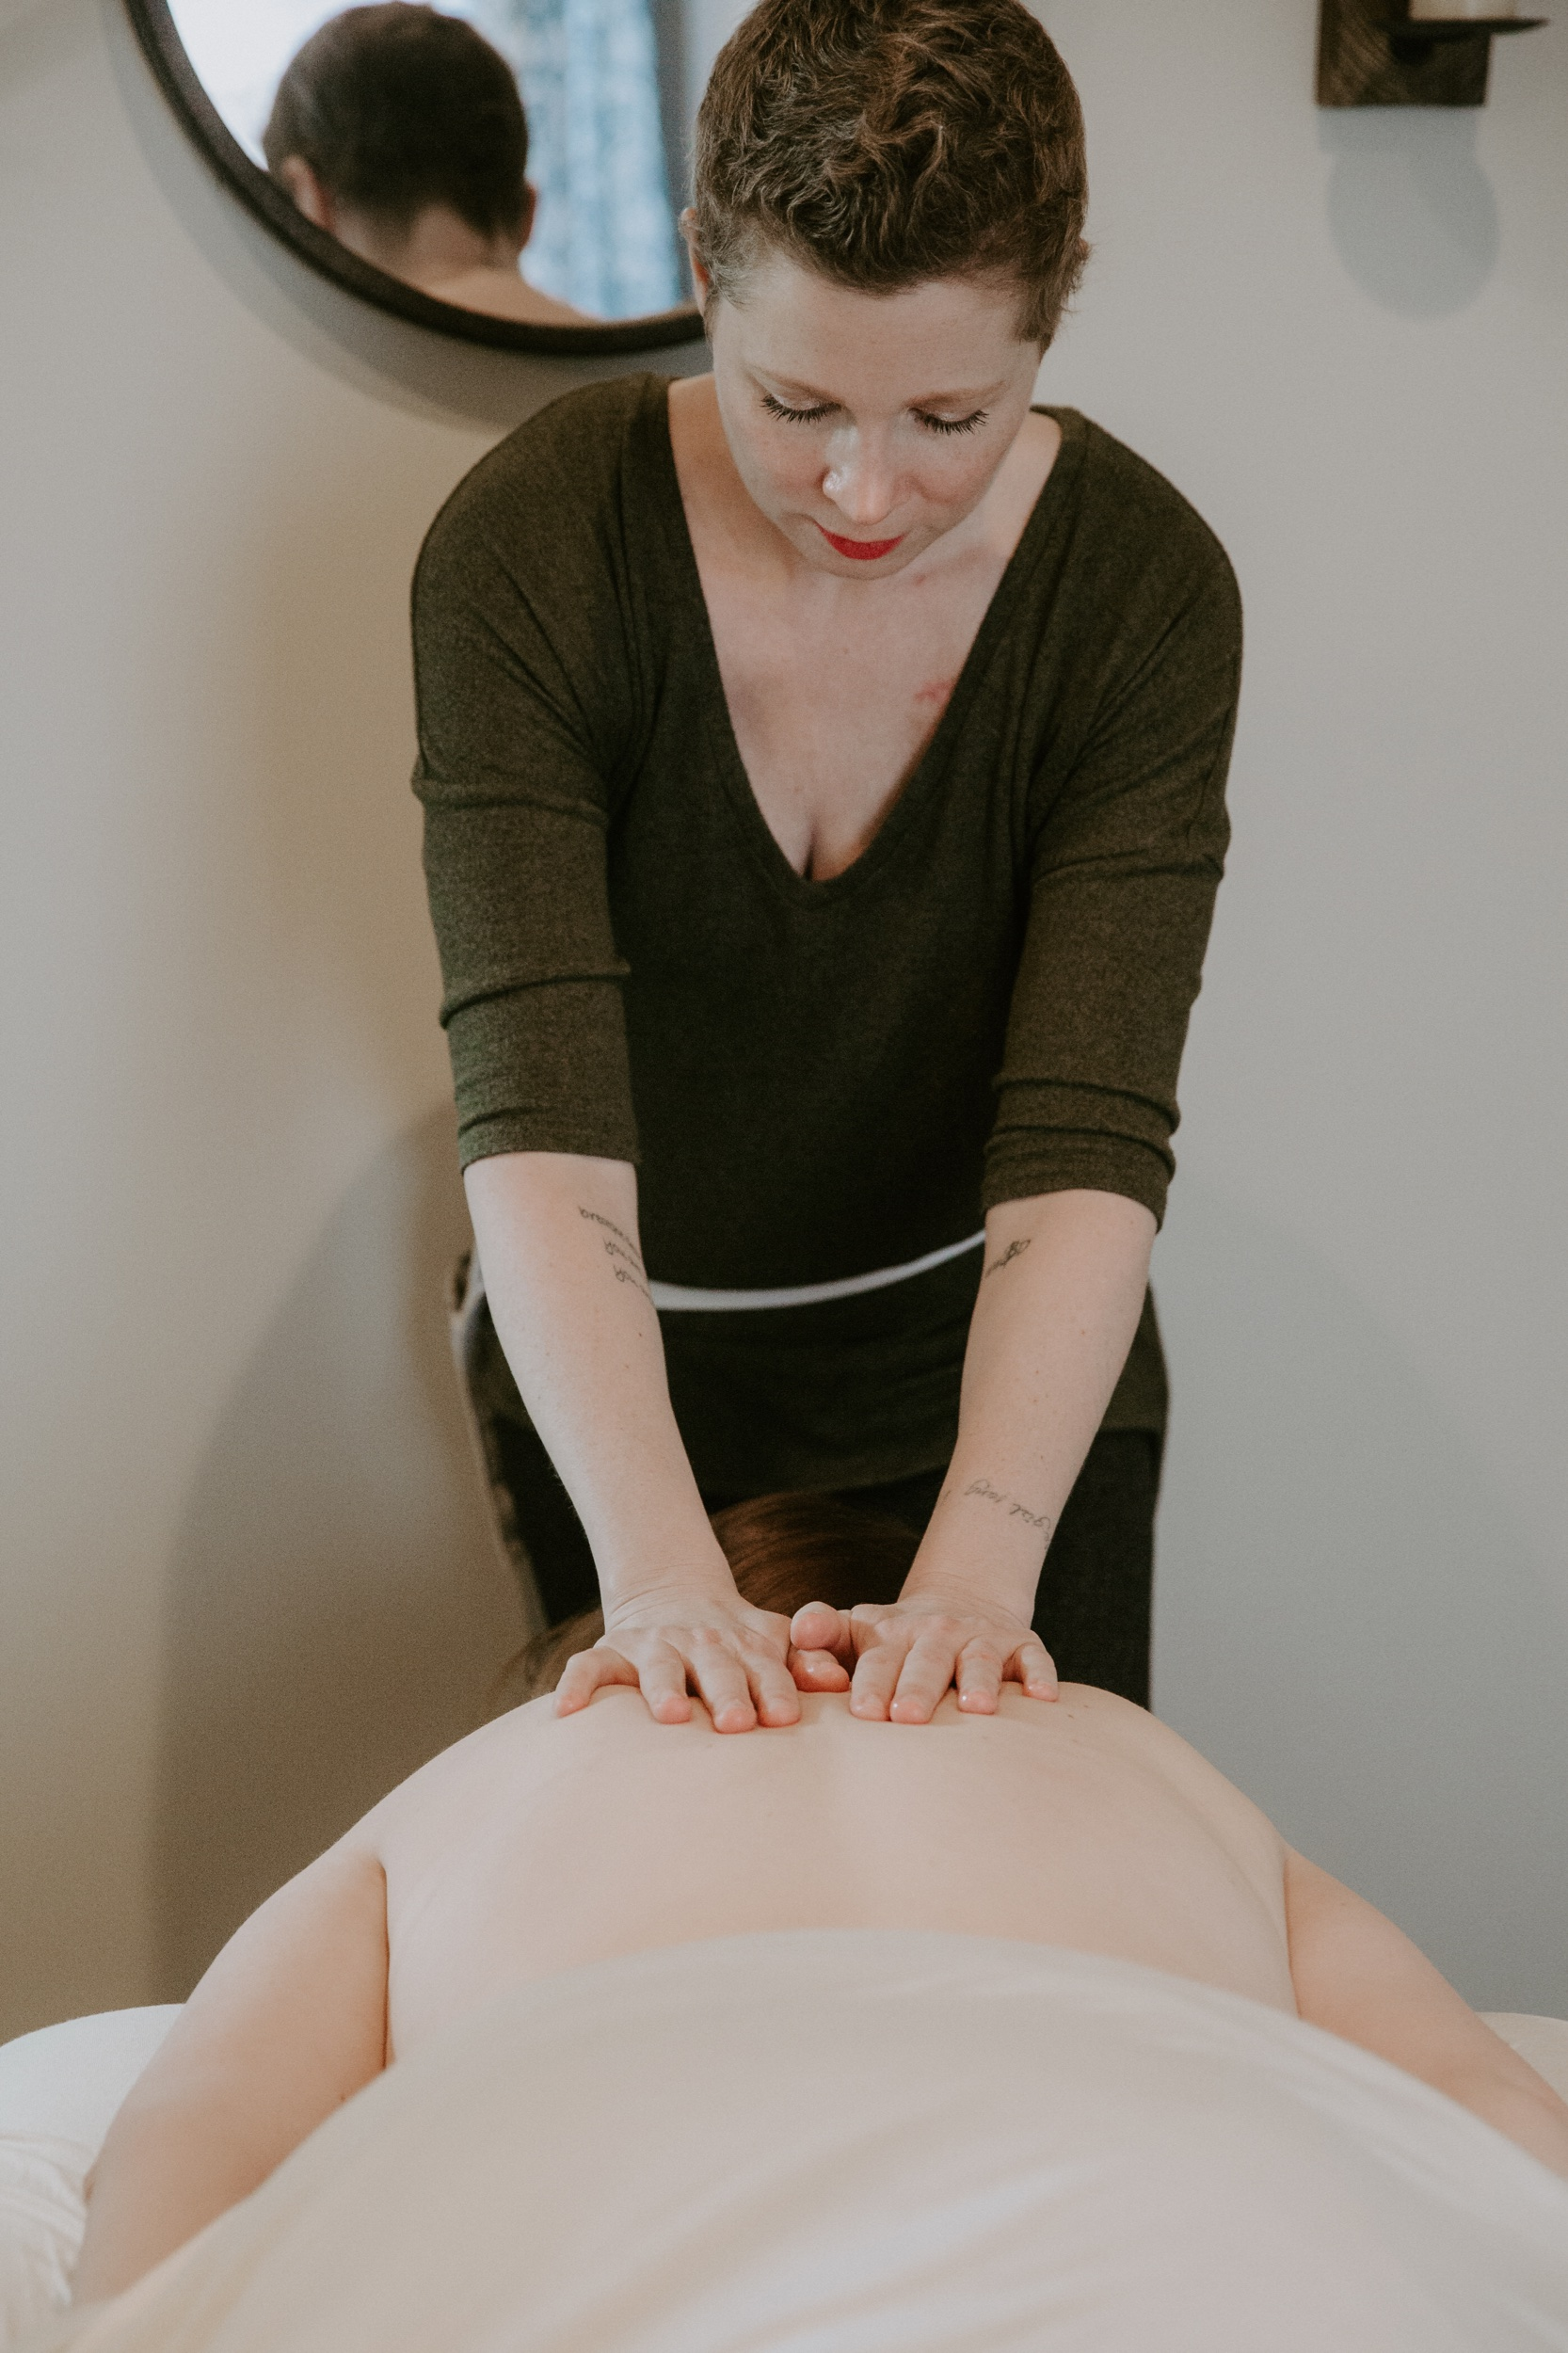 Therapeutic Massage - Integrated therapeutic massage sessions result in relief from aches and pains, increased circulation, decreased stress levels,enhanced mental clarity, and greater flexibility.